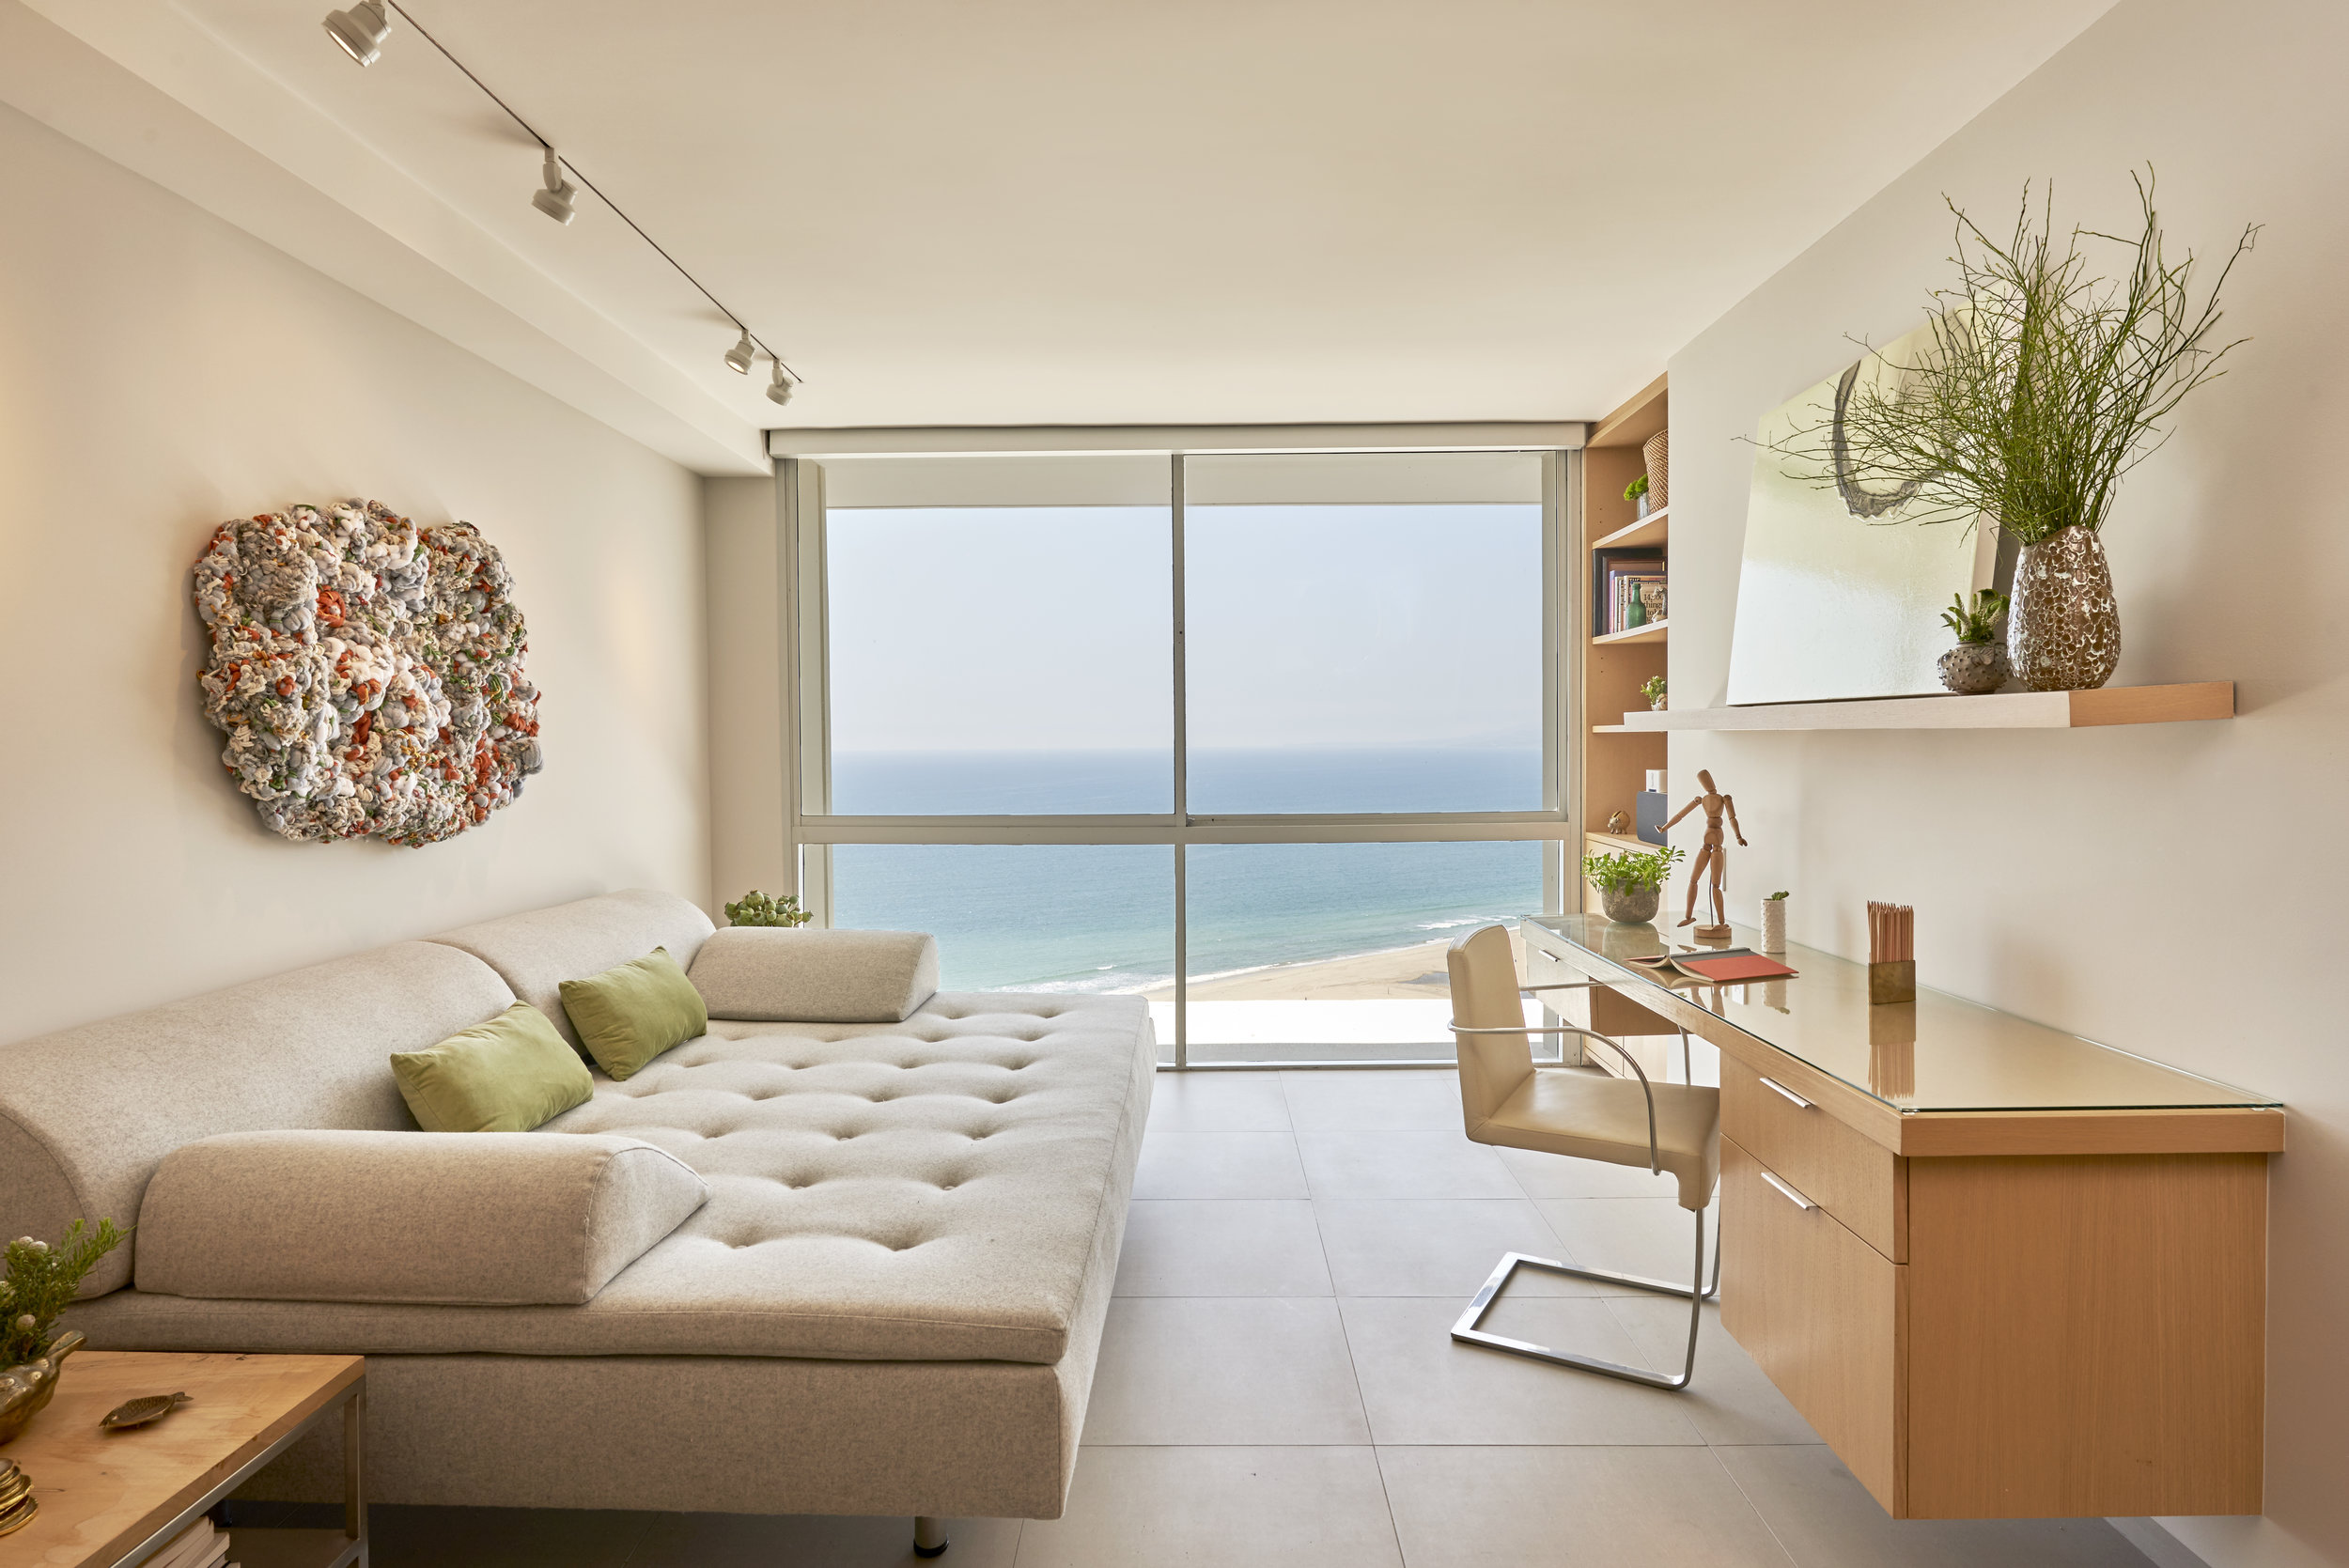 Interior Design: Sarah Barnard, Artwork: Renae Barnard + Ruben Vincent, Photo: Steven Dewall